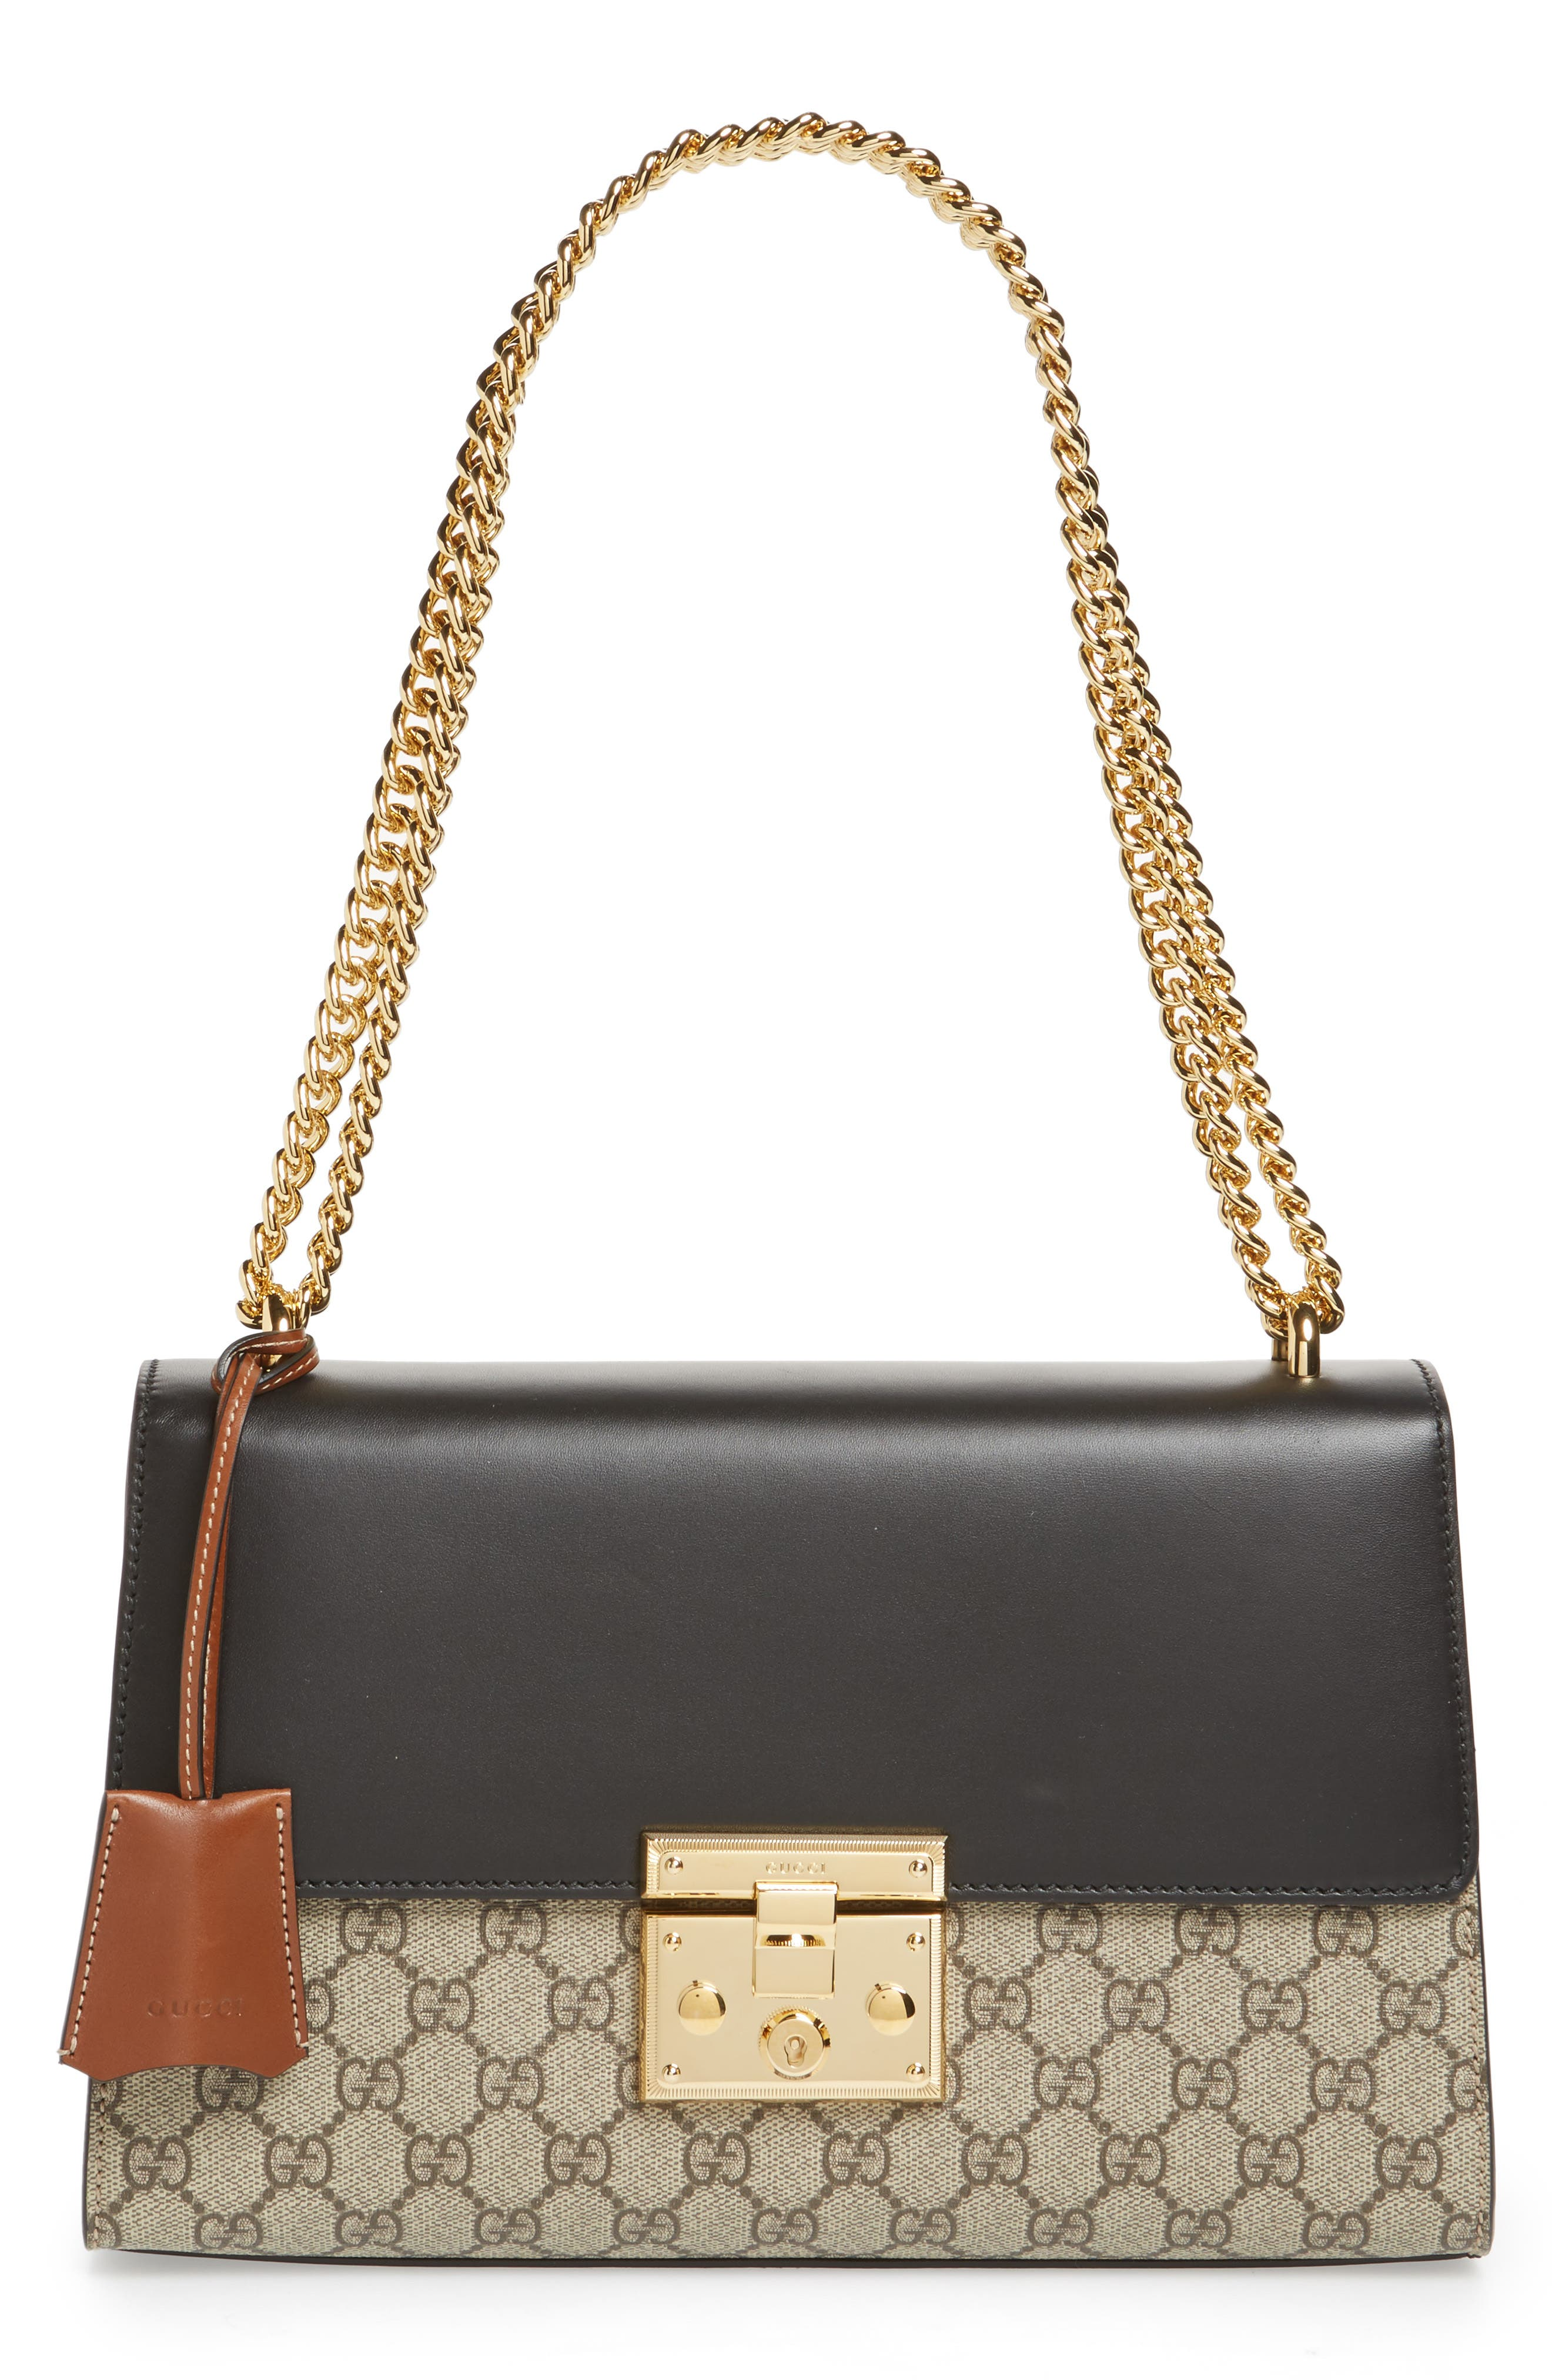 Alternate Image 1 Selected - Gucci Medium Padlock Leather Shoulder Bag